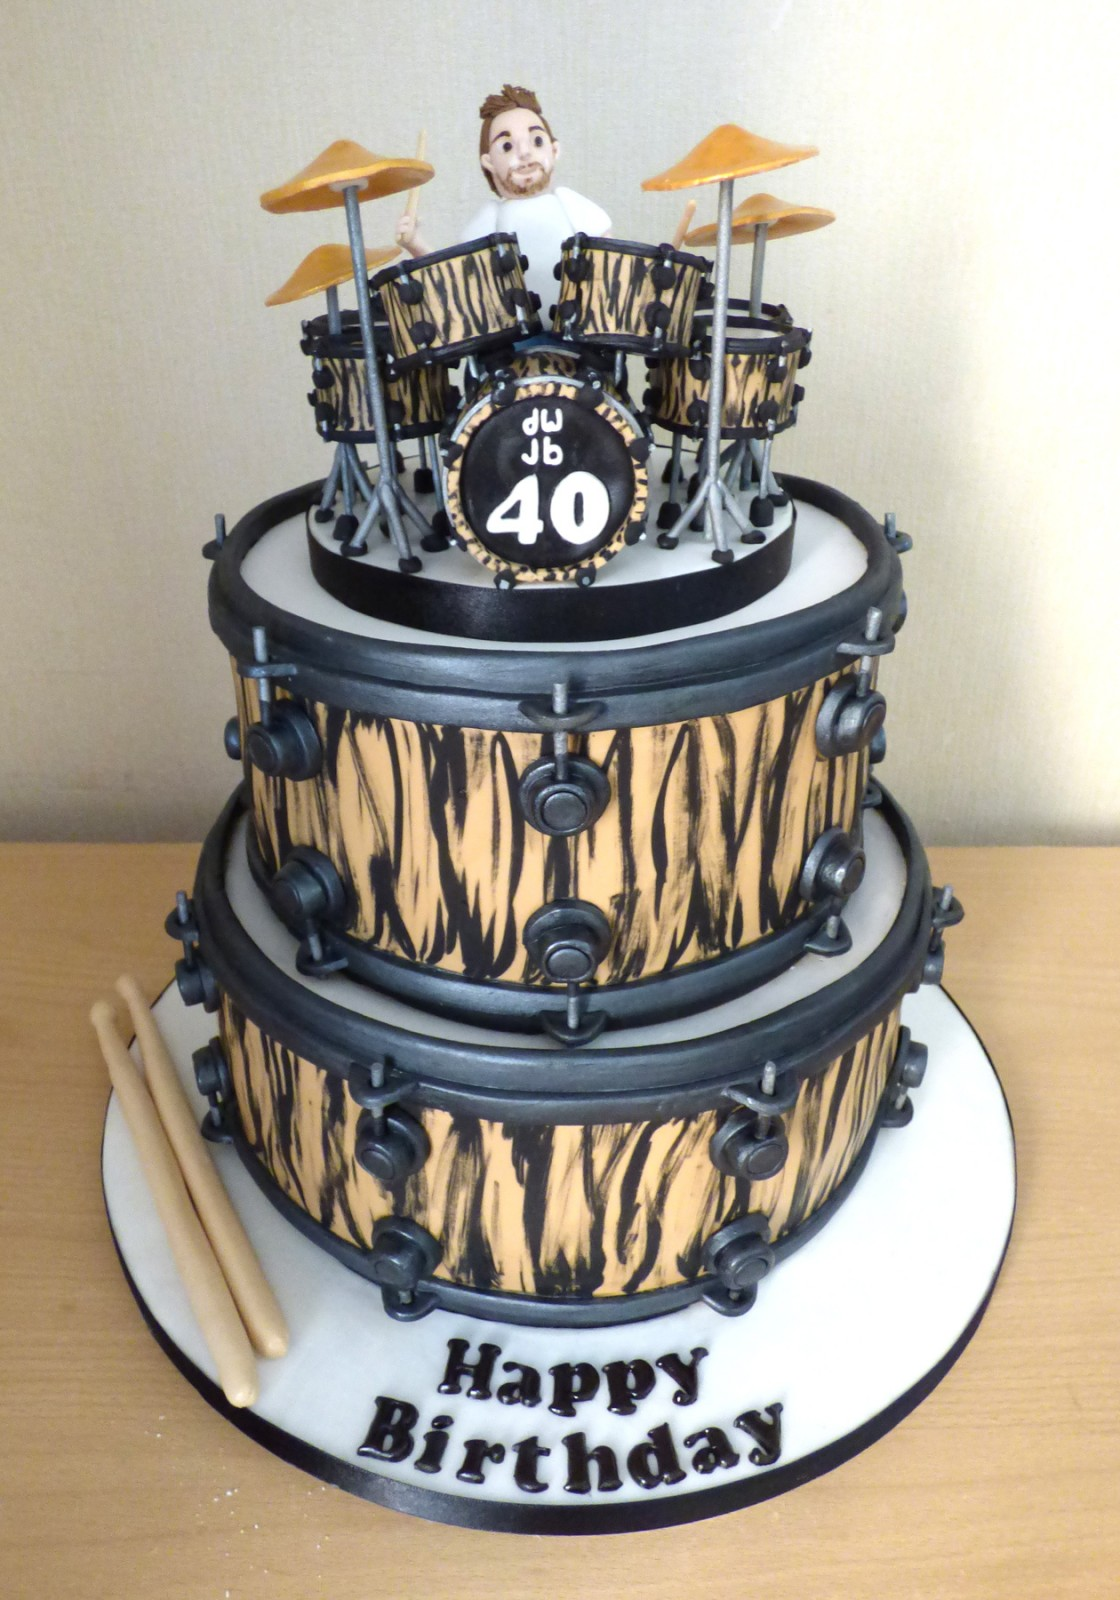 2 Tier Drummer And Drum Kit Birthday Cake